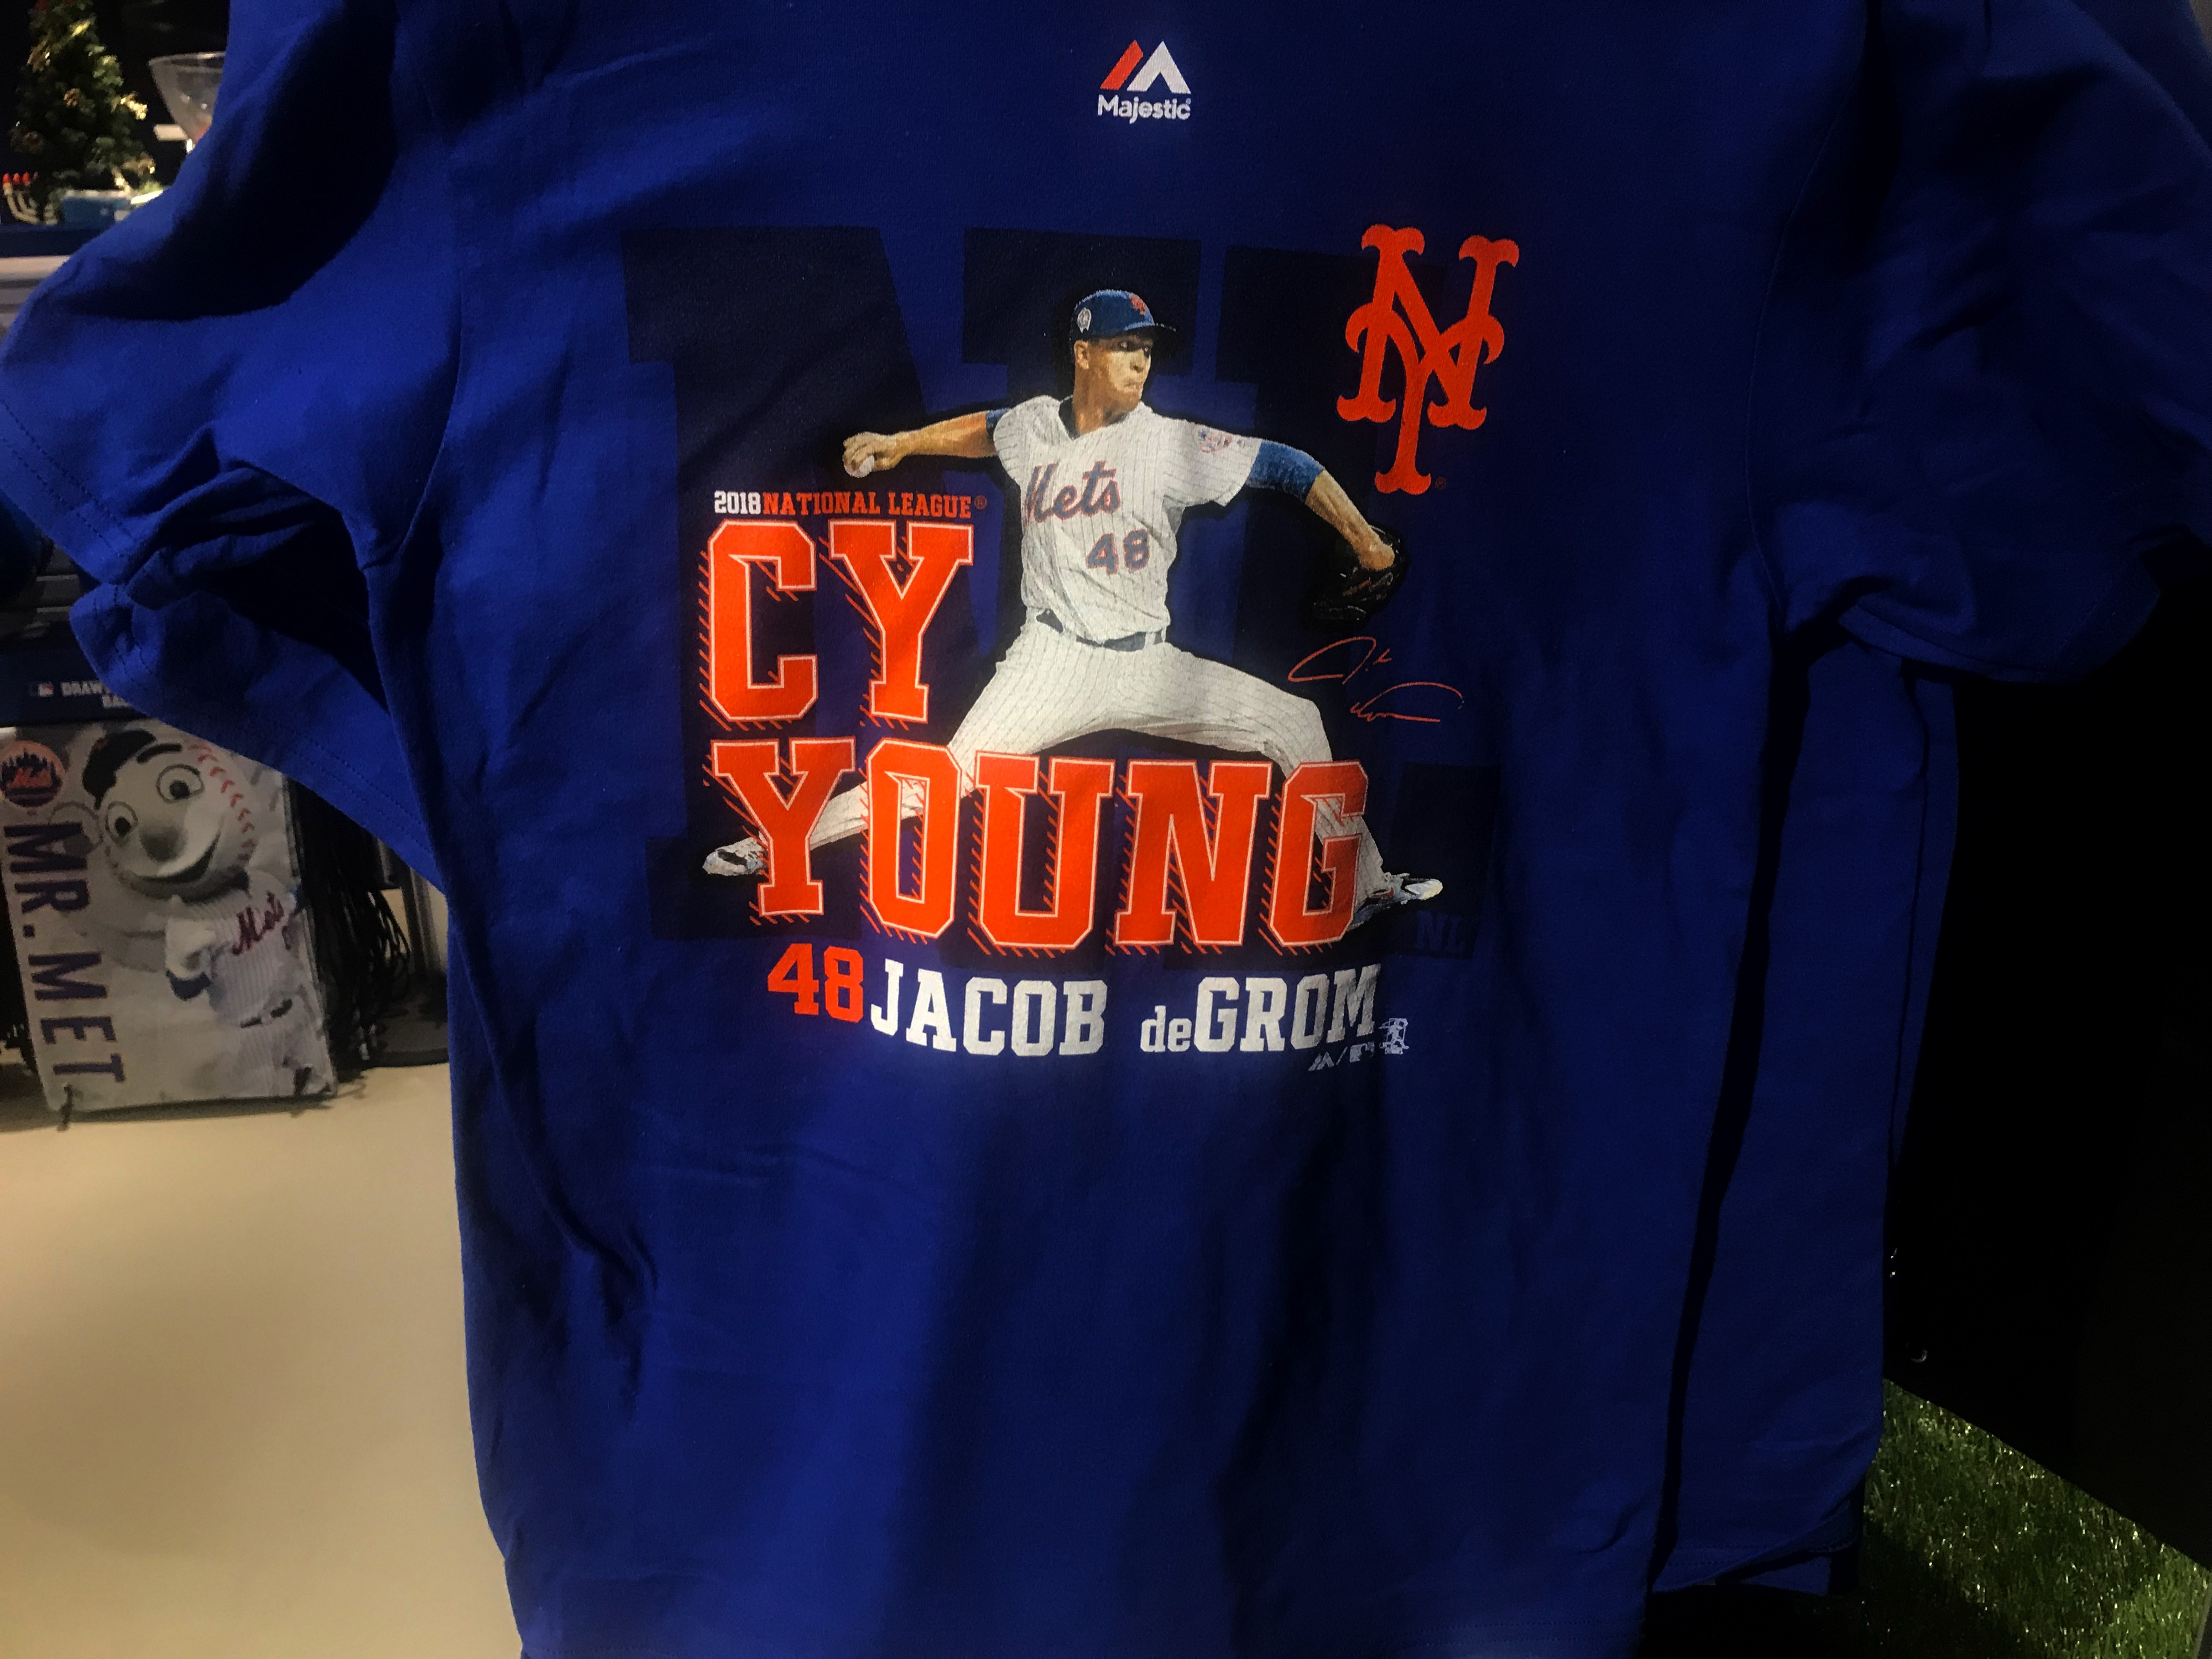 cheap for discount f0fdb 729d4 Mets Team Store Loaded with Great Gifts - Mets Insider Blog